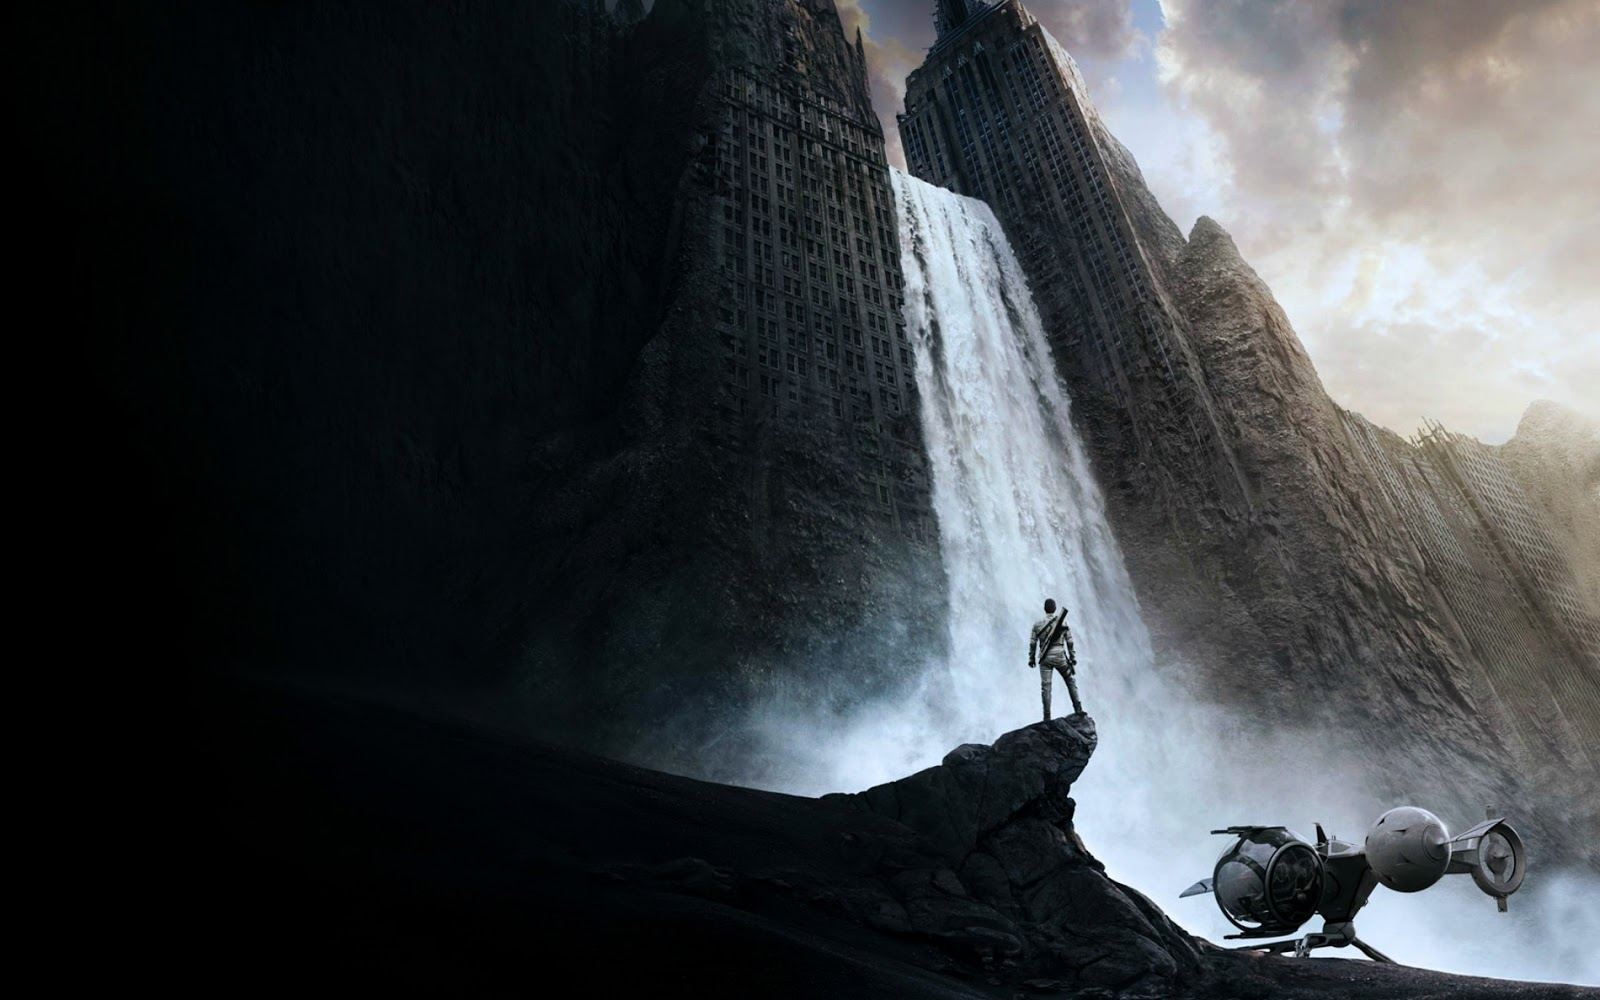 Oblivion 2013 Movie HD Wallpapers and Posters HQ Wallpapers  Free Wallpapers Free HQ Wallpaper